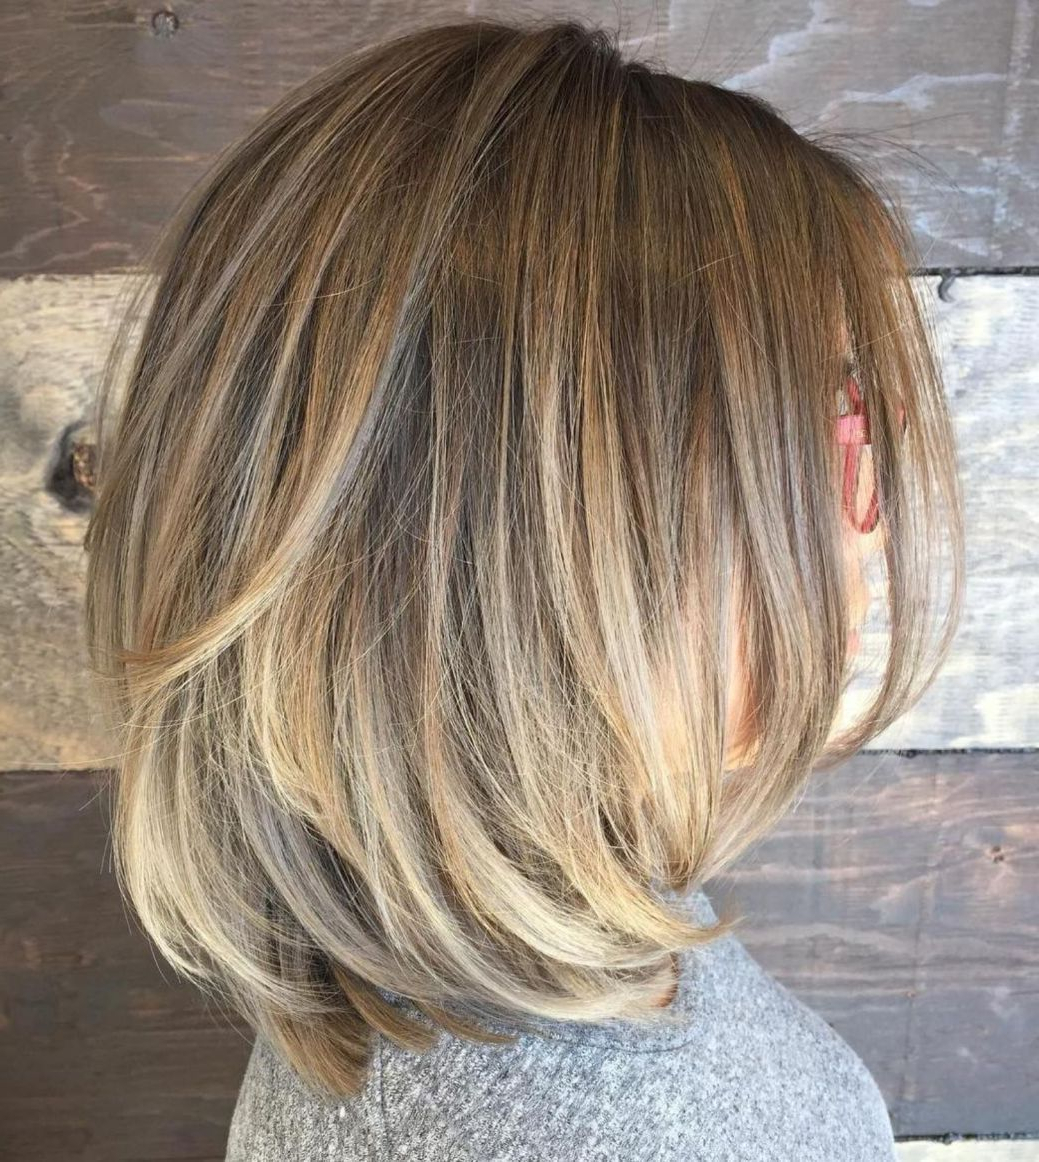 70 Brightest Medium Layered Haircuts To Light You Up In 2019 Within Trendy Thick Feathered Blonde Lob Hairstyles (View 16 of 20)